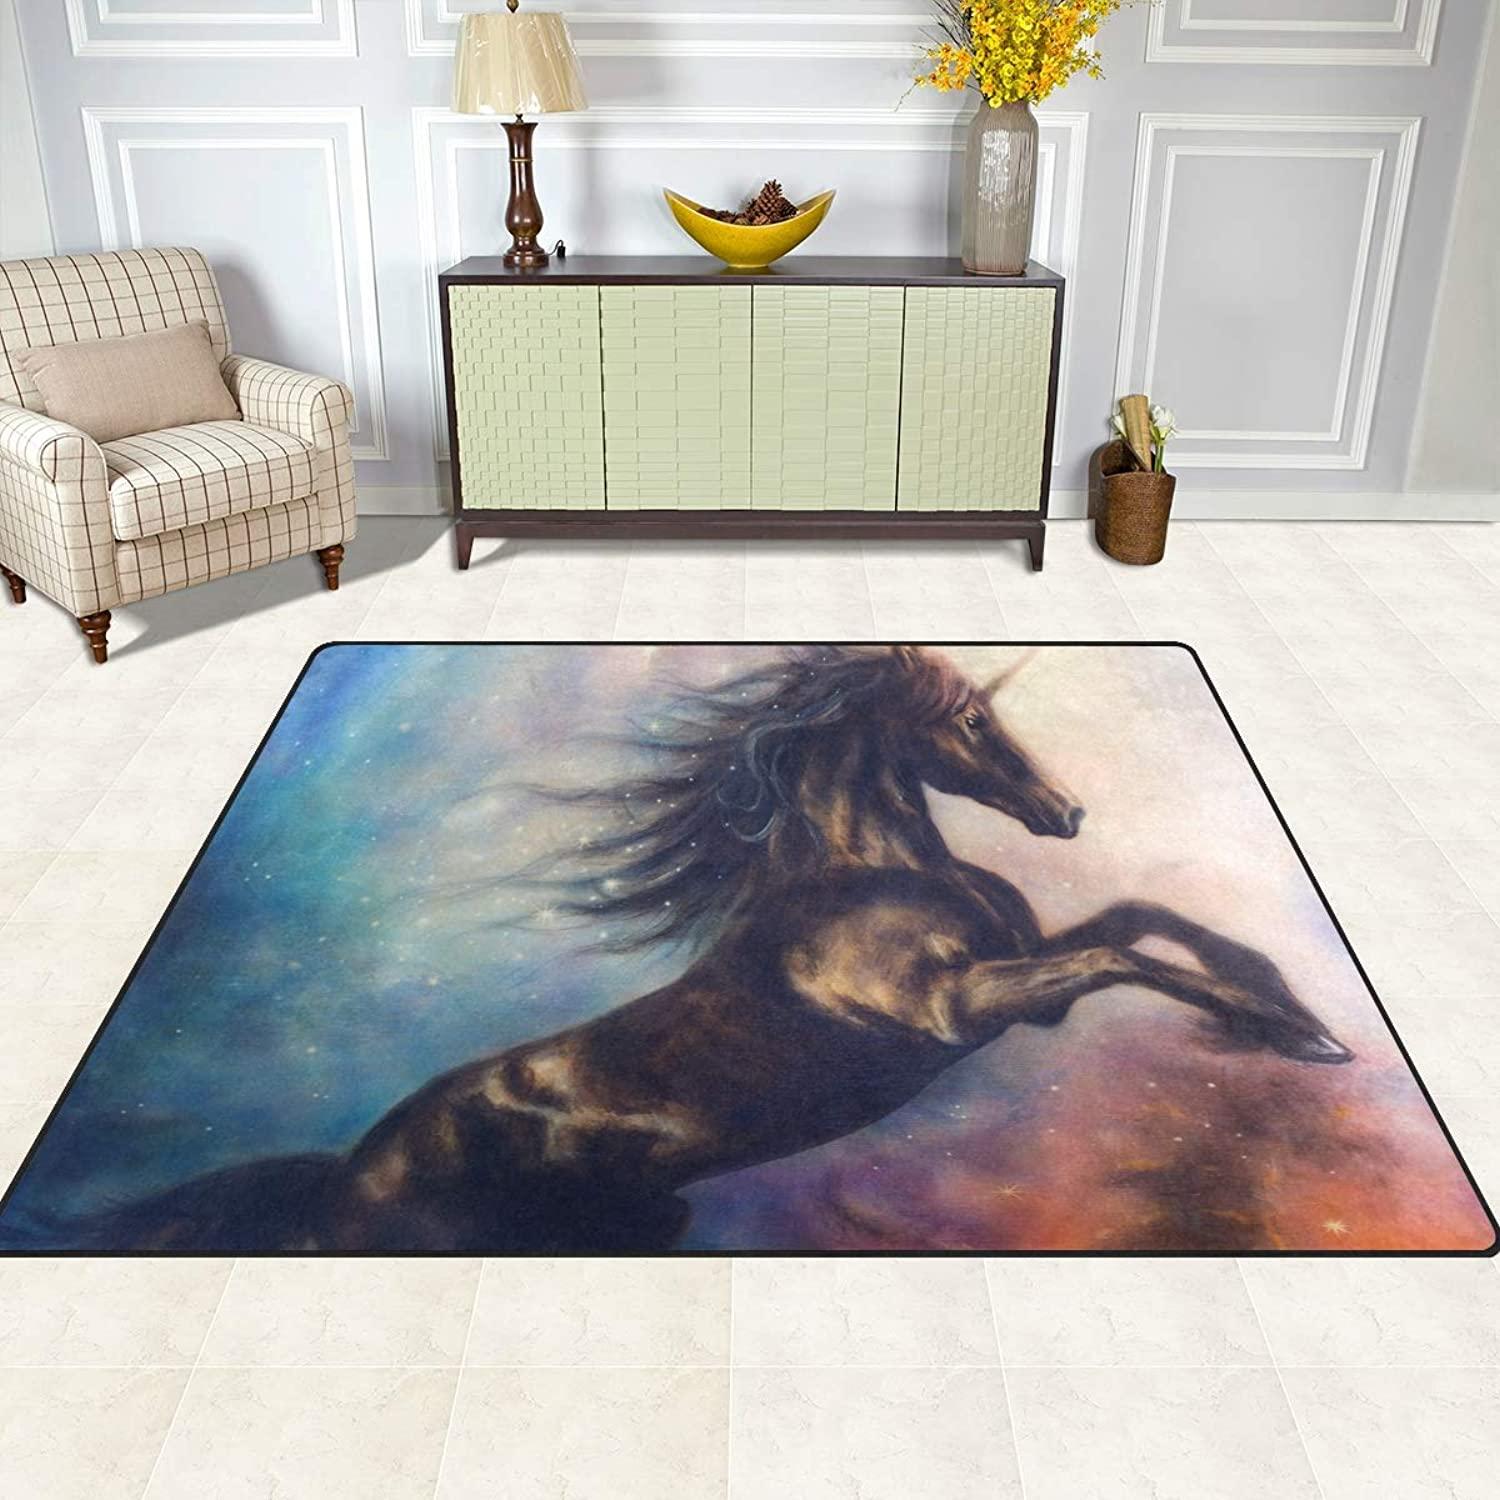 FAJRO Black Unicorn in Space Rugs for entryway Doormat Area Rug Multipattern Door Mat shoes Scraper Home Dec Anti-Slip Indoor Outdoor